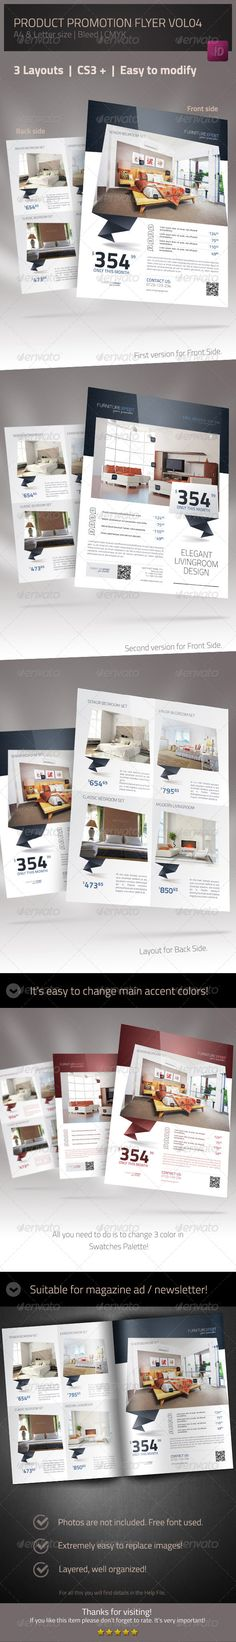 Product Promotion Flyer Template #GraphicRiver This Product Promotion Flyer Template is designed to be used to promote furniture and interior design but it can be useful for multiple product categories such as: fashion accessories, electronics and so on. You can find many other possible uses. The package includes files for CS3, CS4 and CS5 version of InDesign. All the elements in the design such as text, colours, styles and images can b